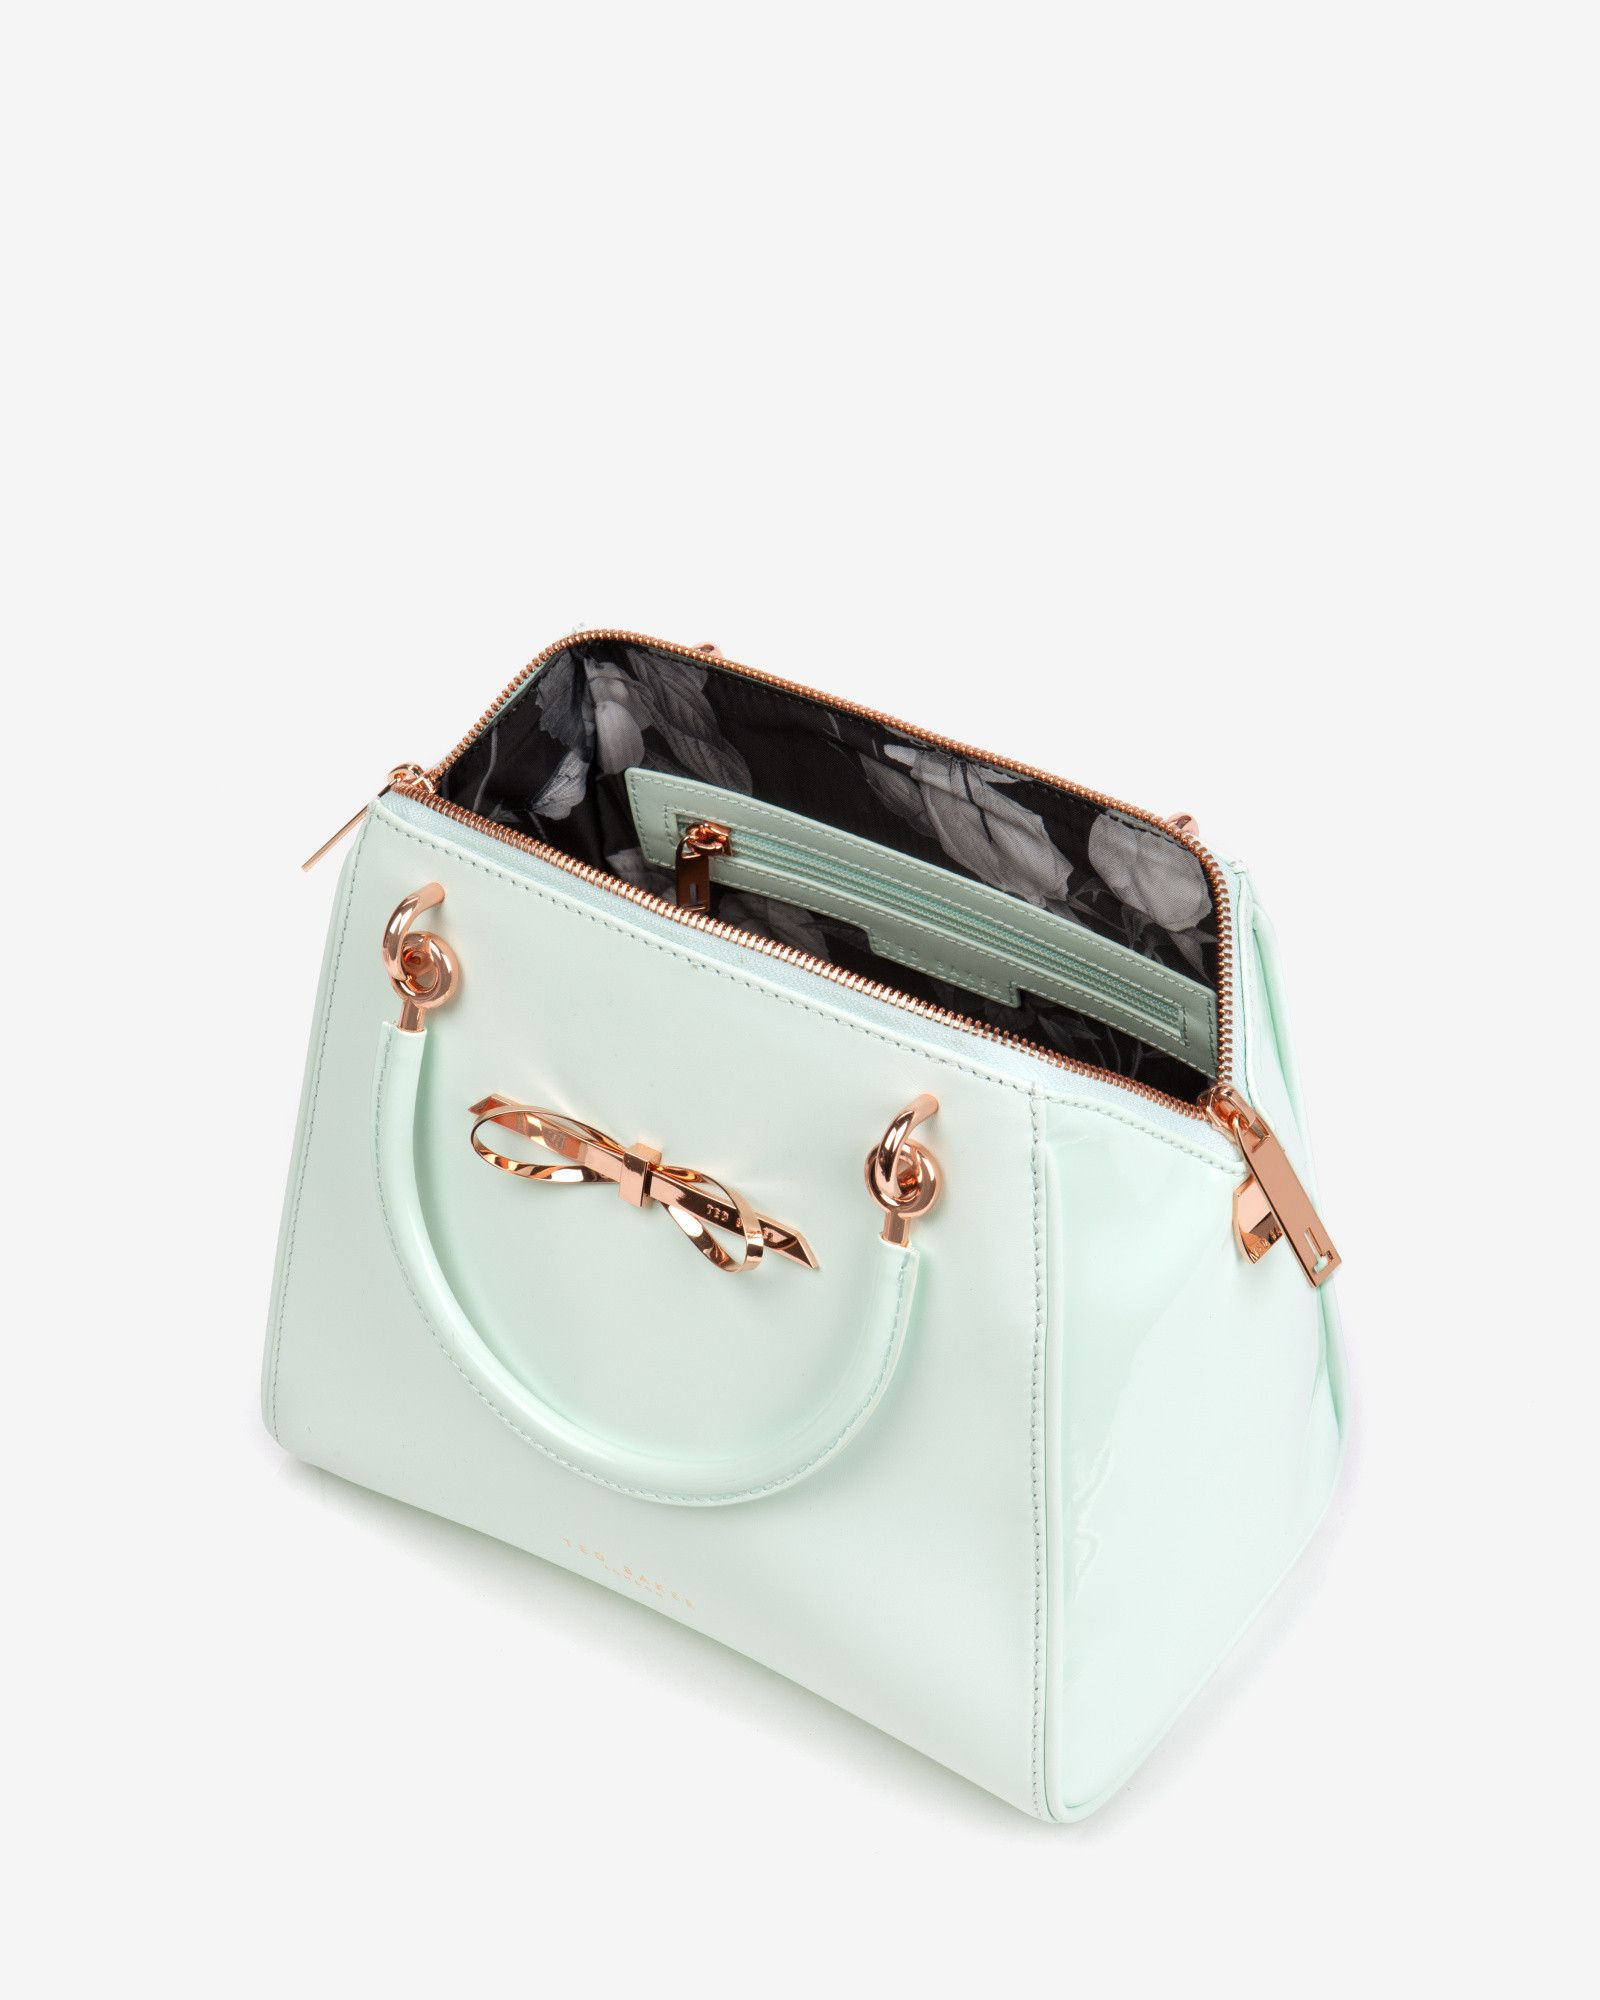 79c69b3c064254 Ted baker Small Slim Bow Tote Bag in Green (Mint)